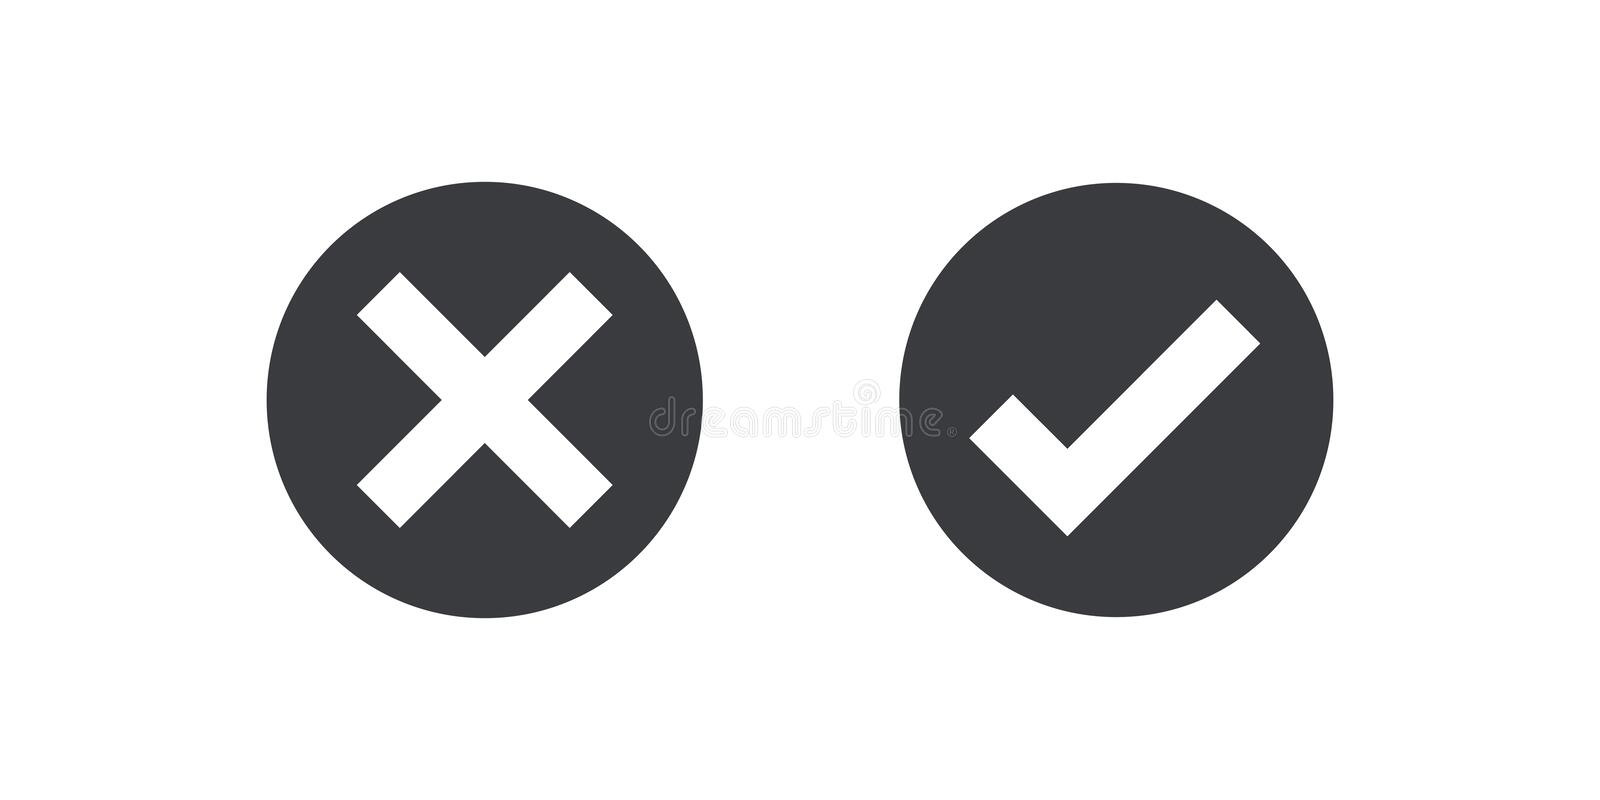 Black circle icon check mark icon isolated on transparent background. Approve and cancel symbol for design project. Flat bu. Black circle icon check mark icon stock illustration